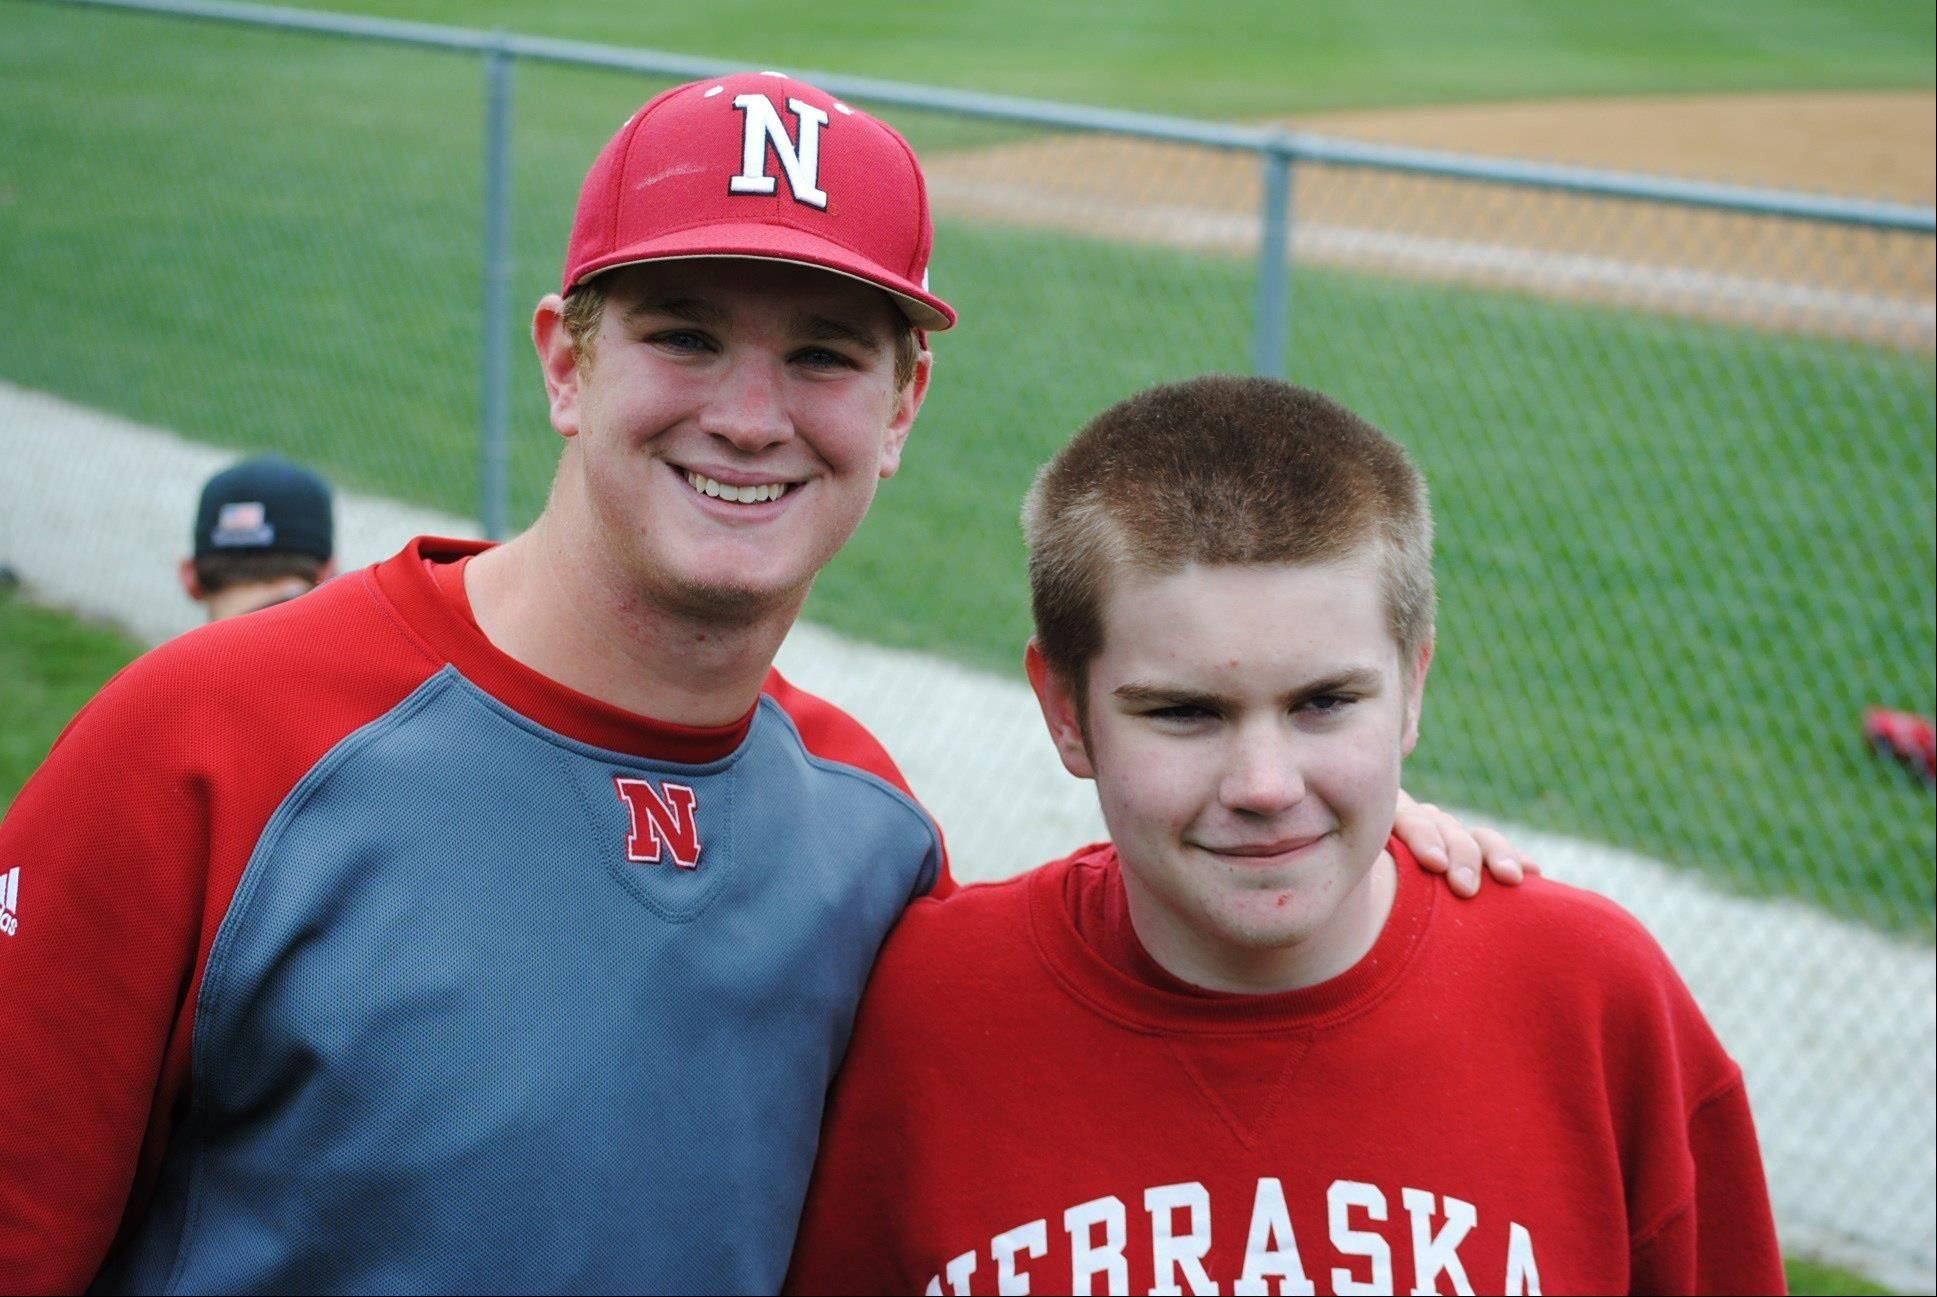 St. Charles North product Zach Hirsch, now pitching for Nebraska, meets up with his former high school lunchmate Graham Jackson during a recent Big Ten game at Northwestern.